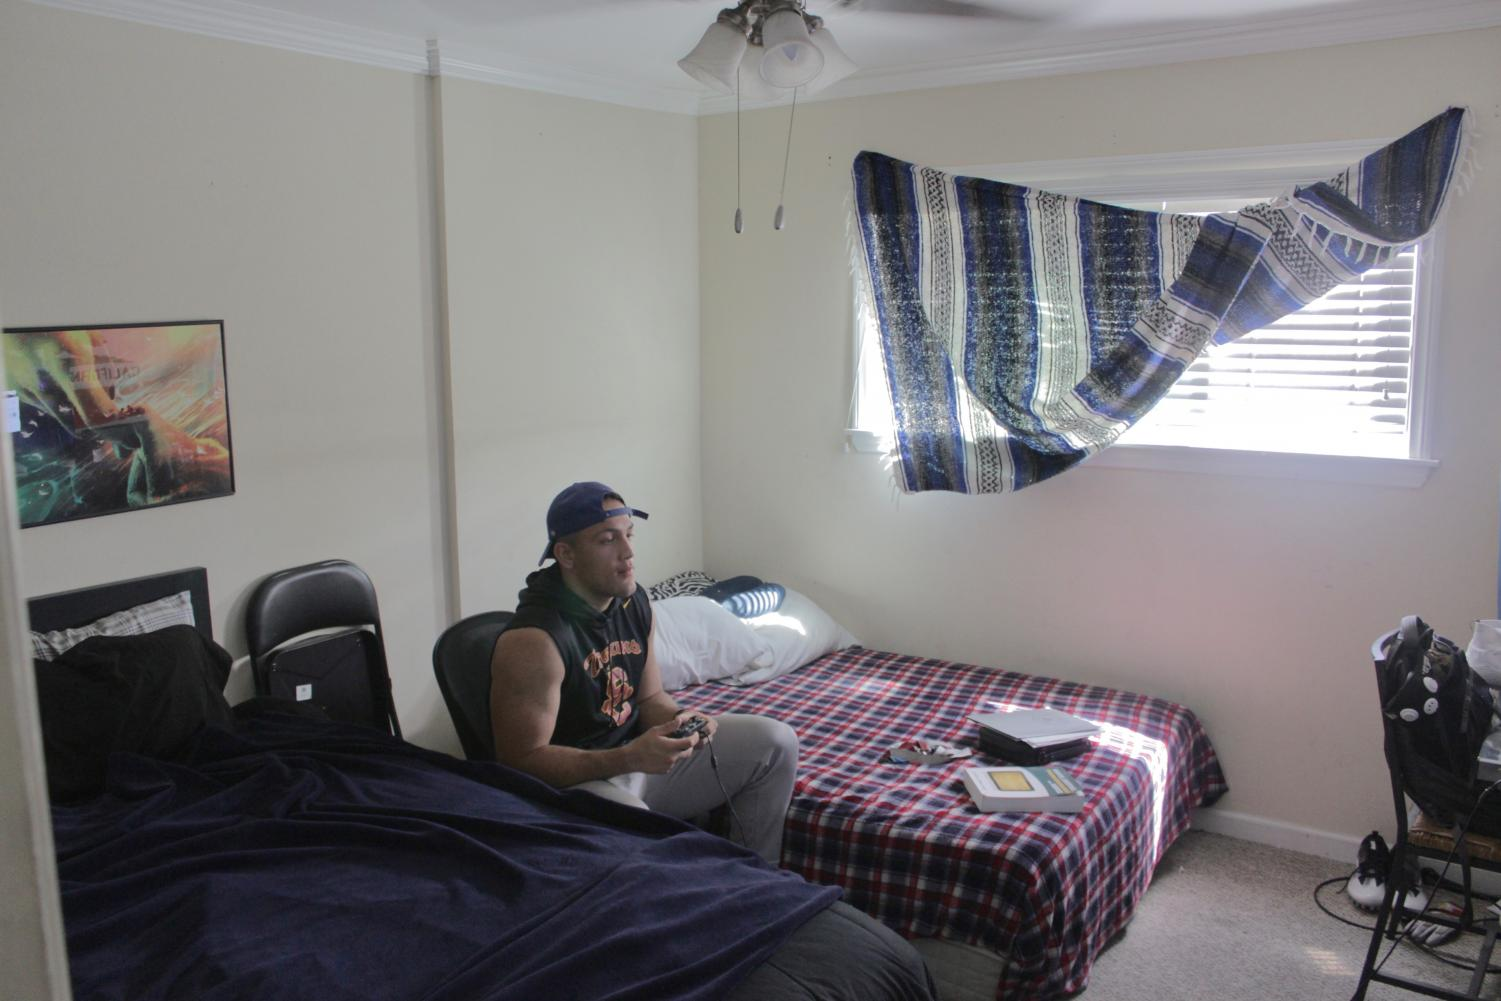 5 EC football players share 3 bedroom apartment